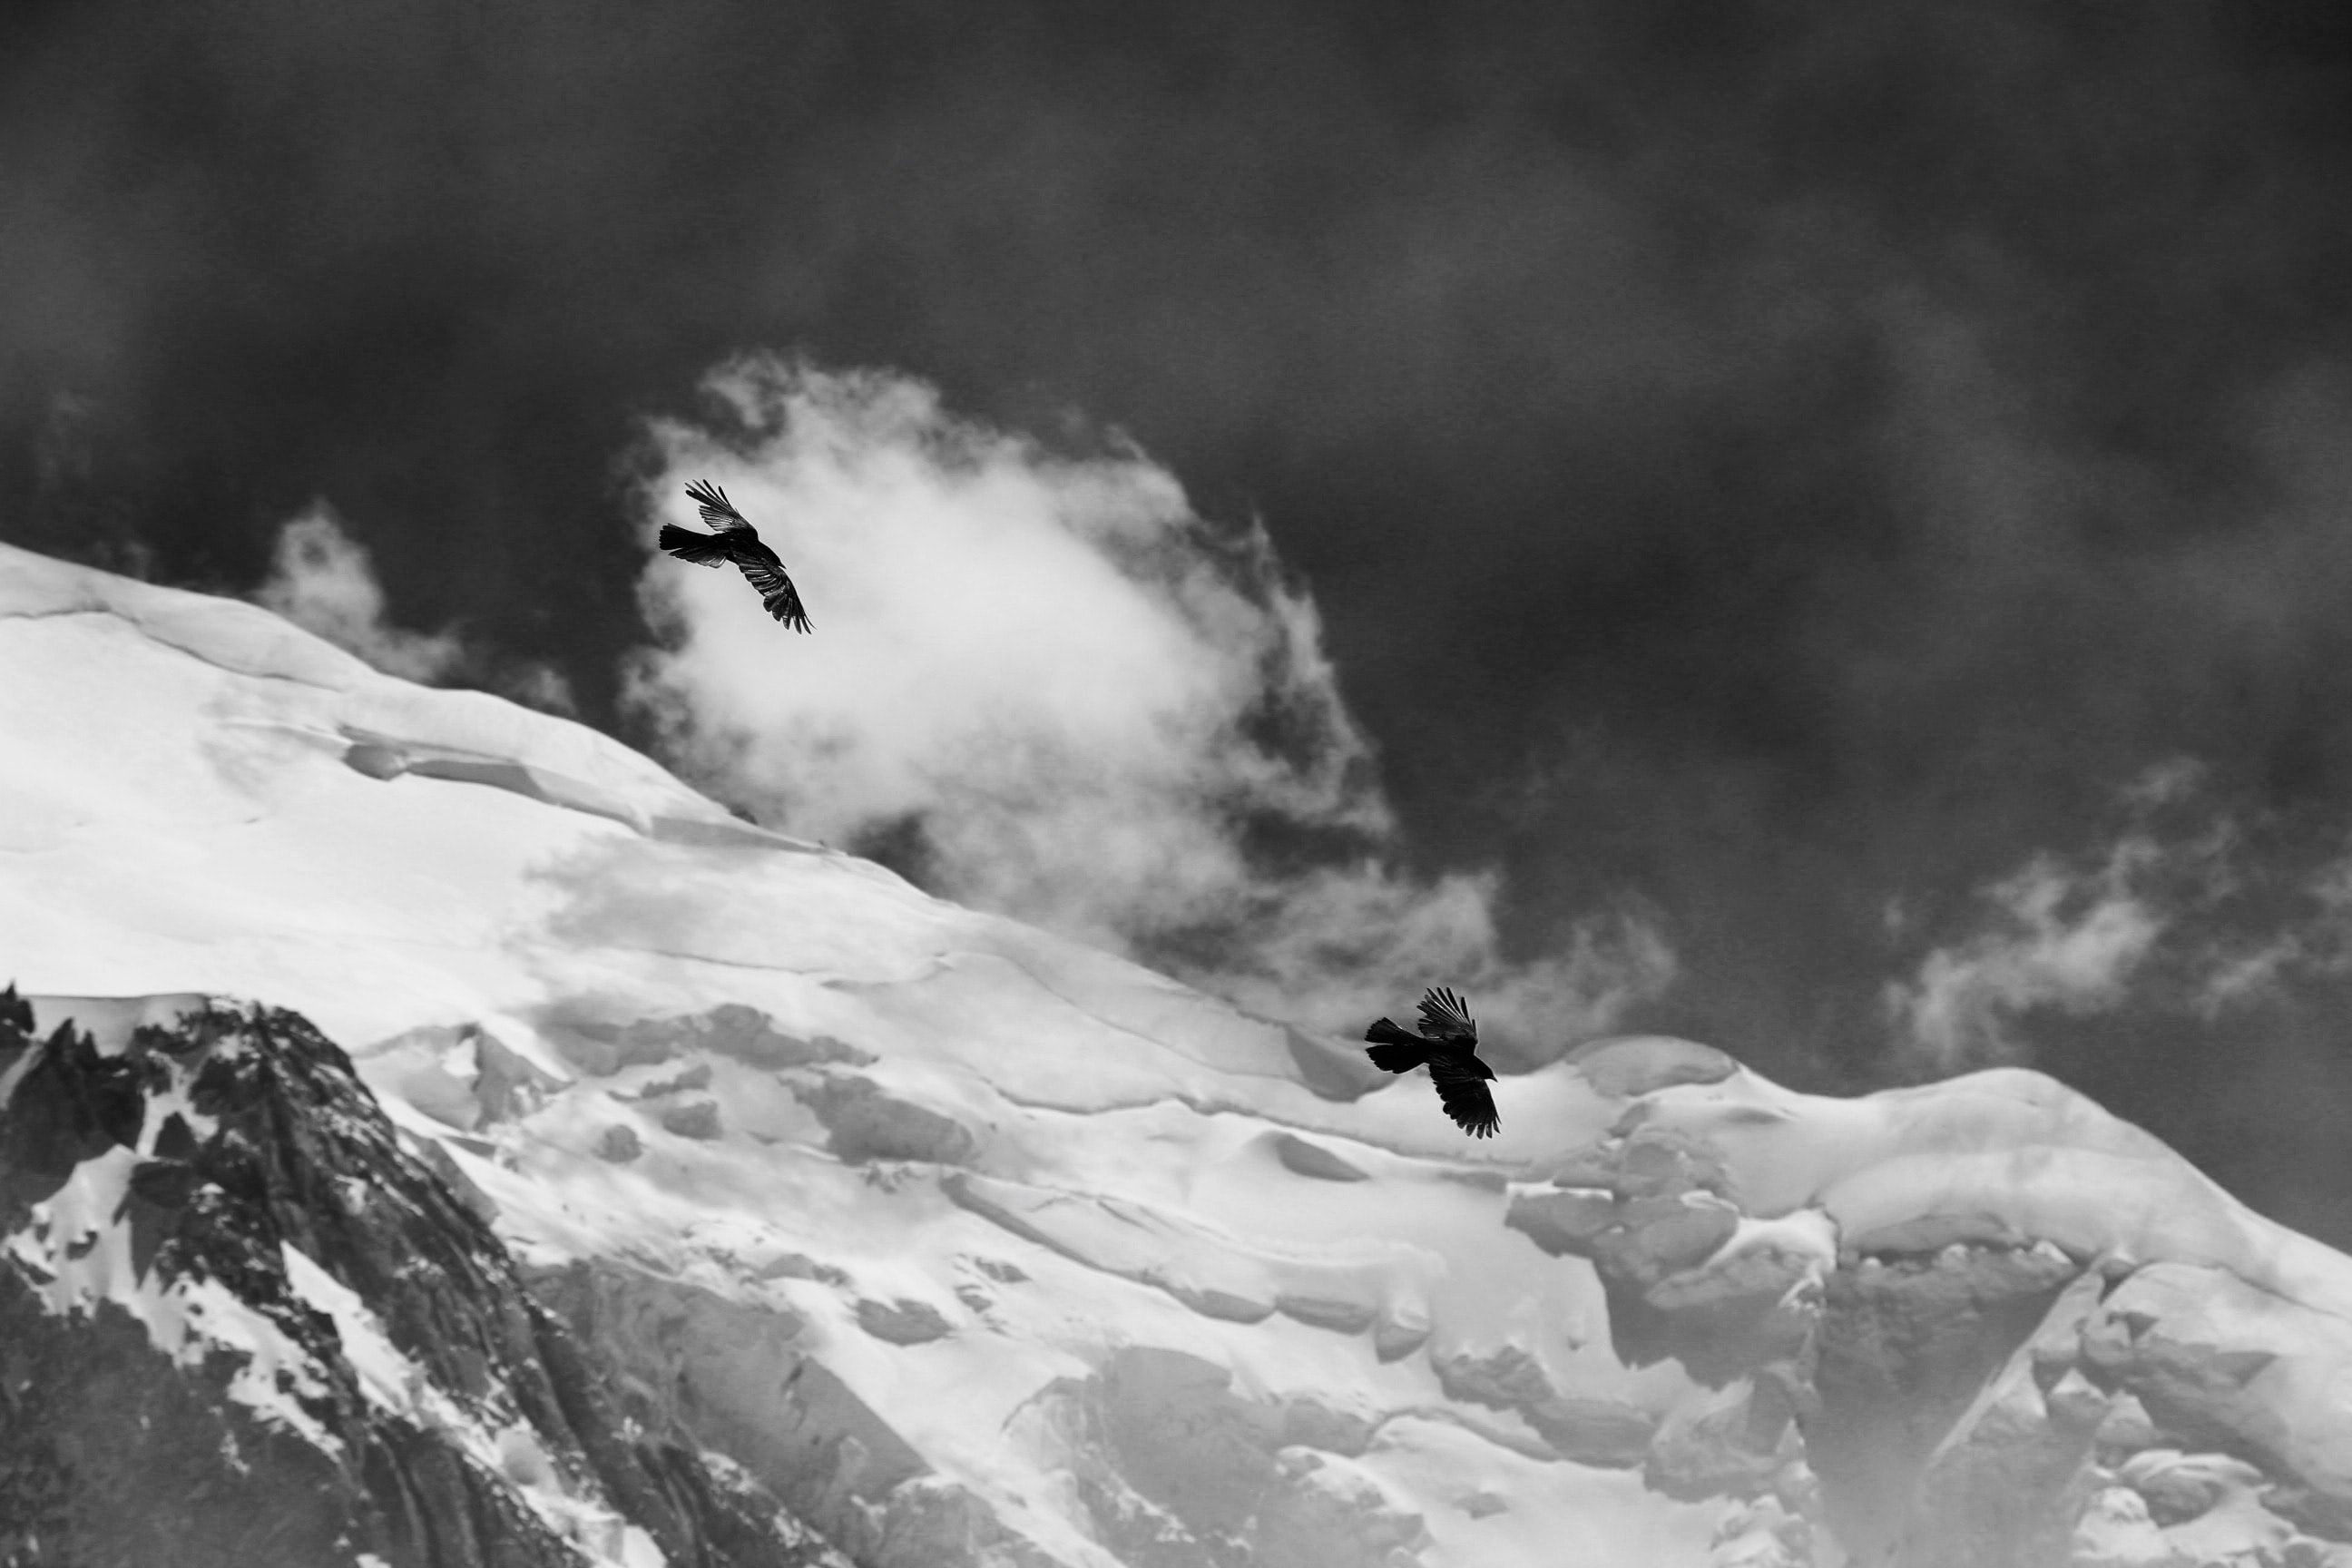 Two birds in flight over snowy mountains and dark,cloudy skies